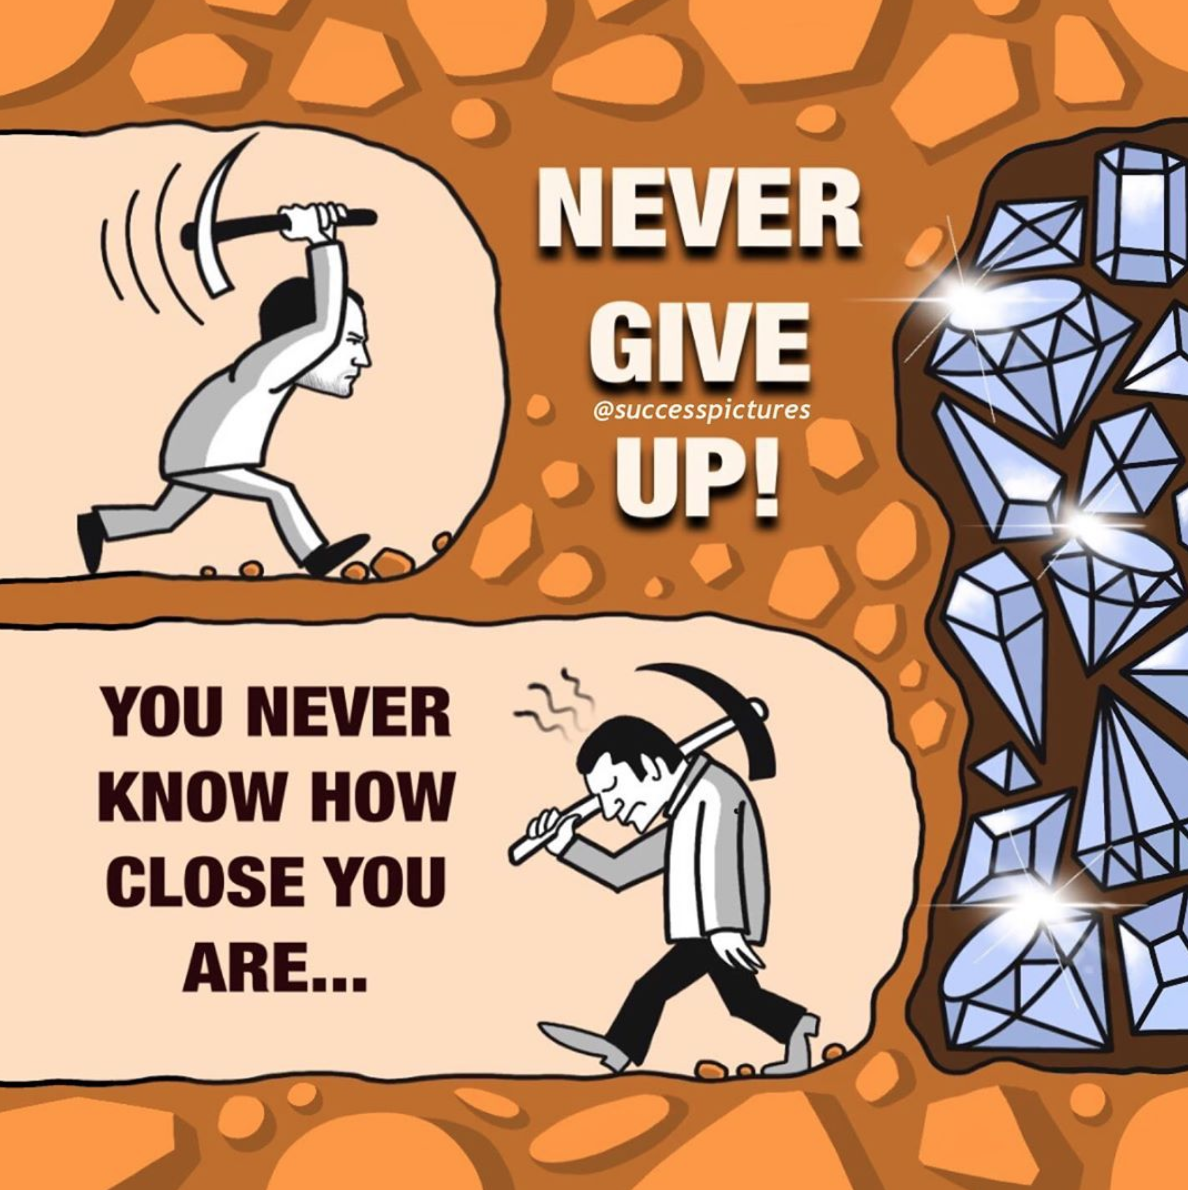 [Image] Never give up, because you may well be very close to achieving your goals